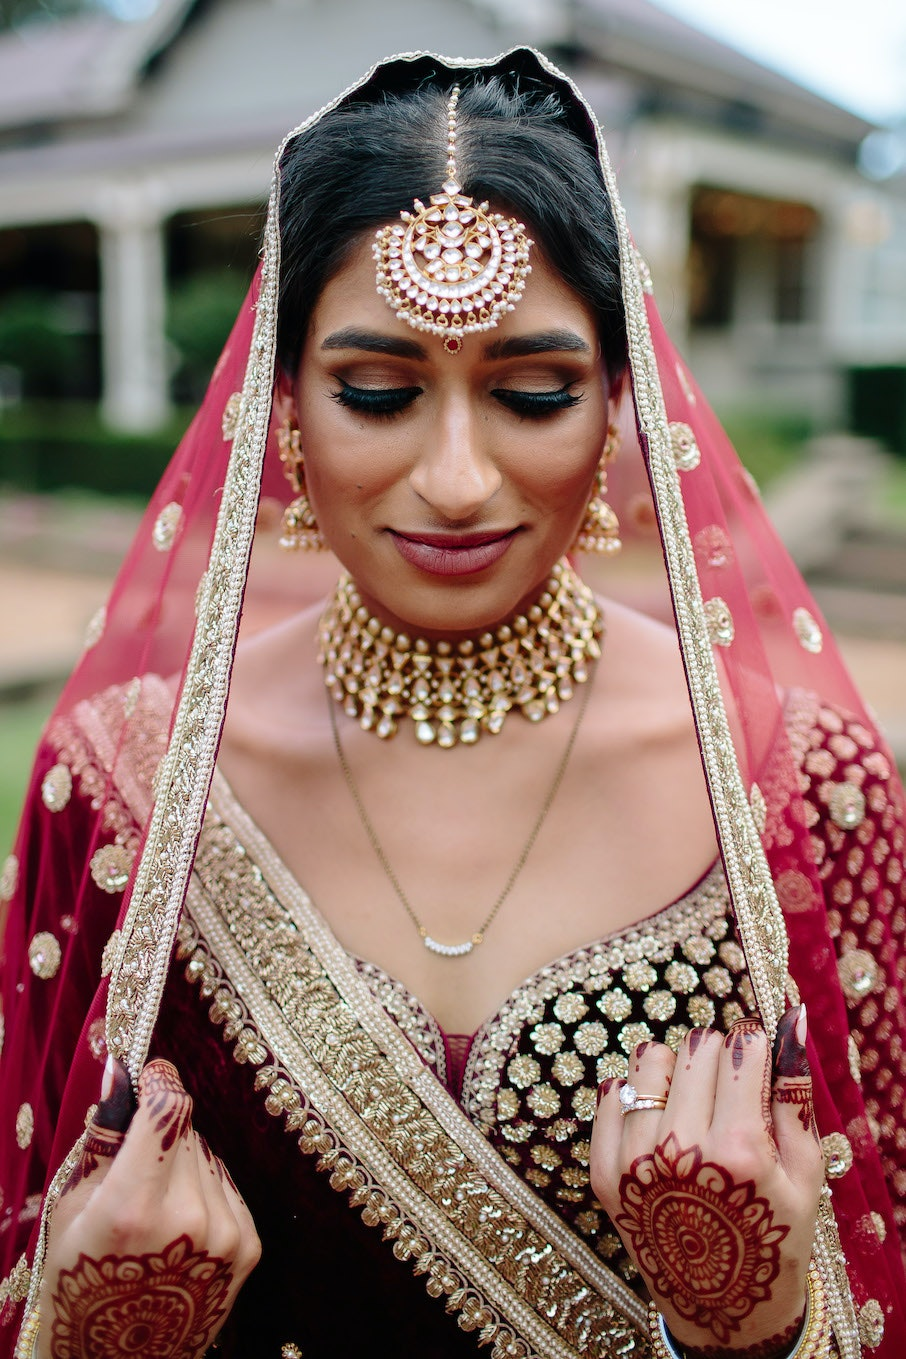 Indian bride with traditional headdress and jewellery